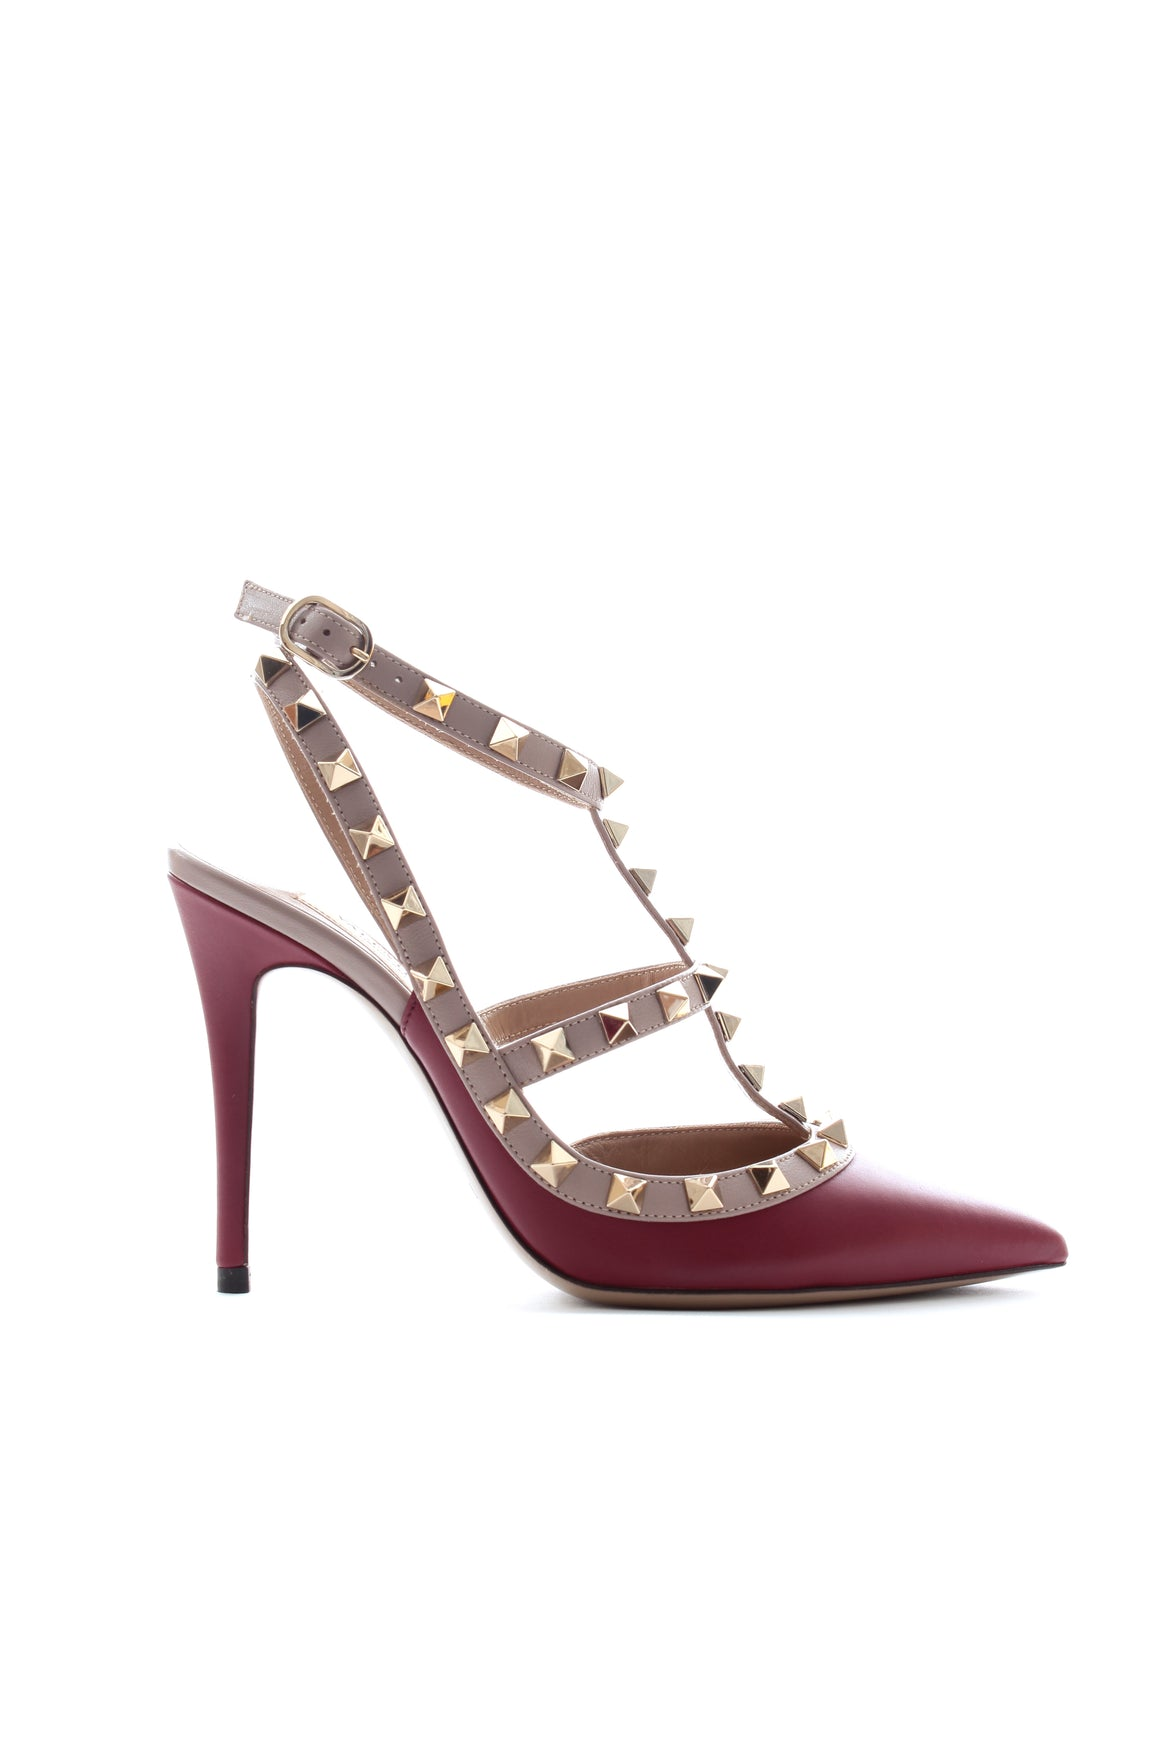 Valentino Garavani Rockstud 100 Two-Tone Leather Pumps